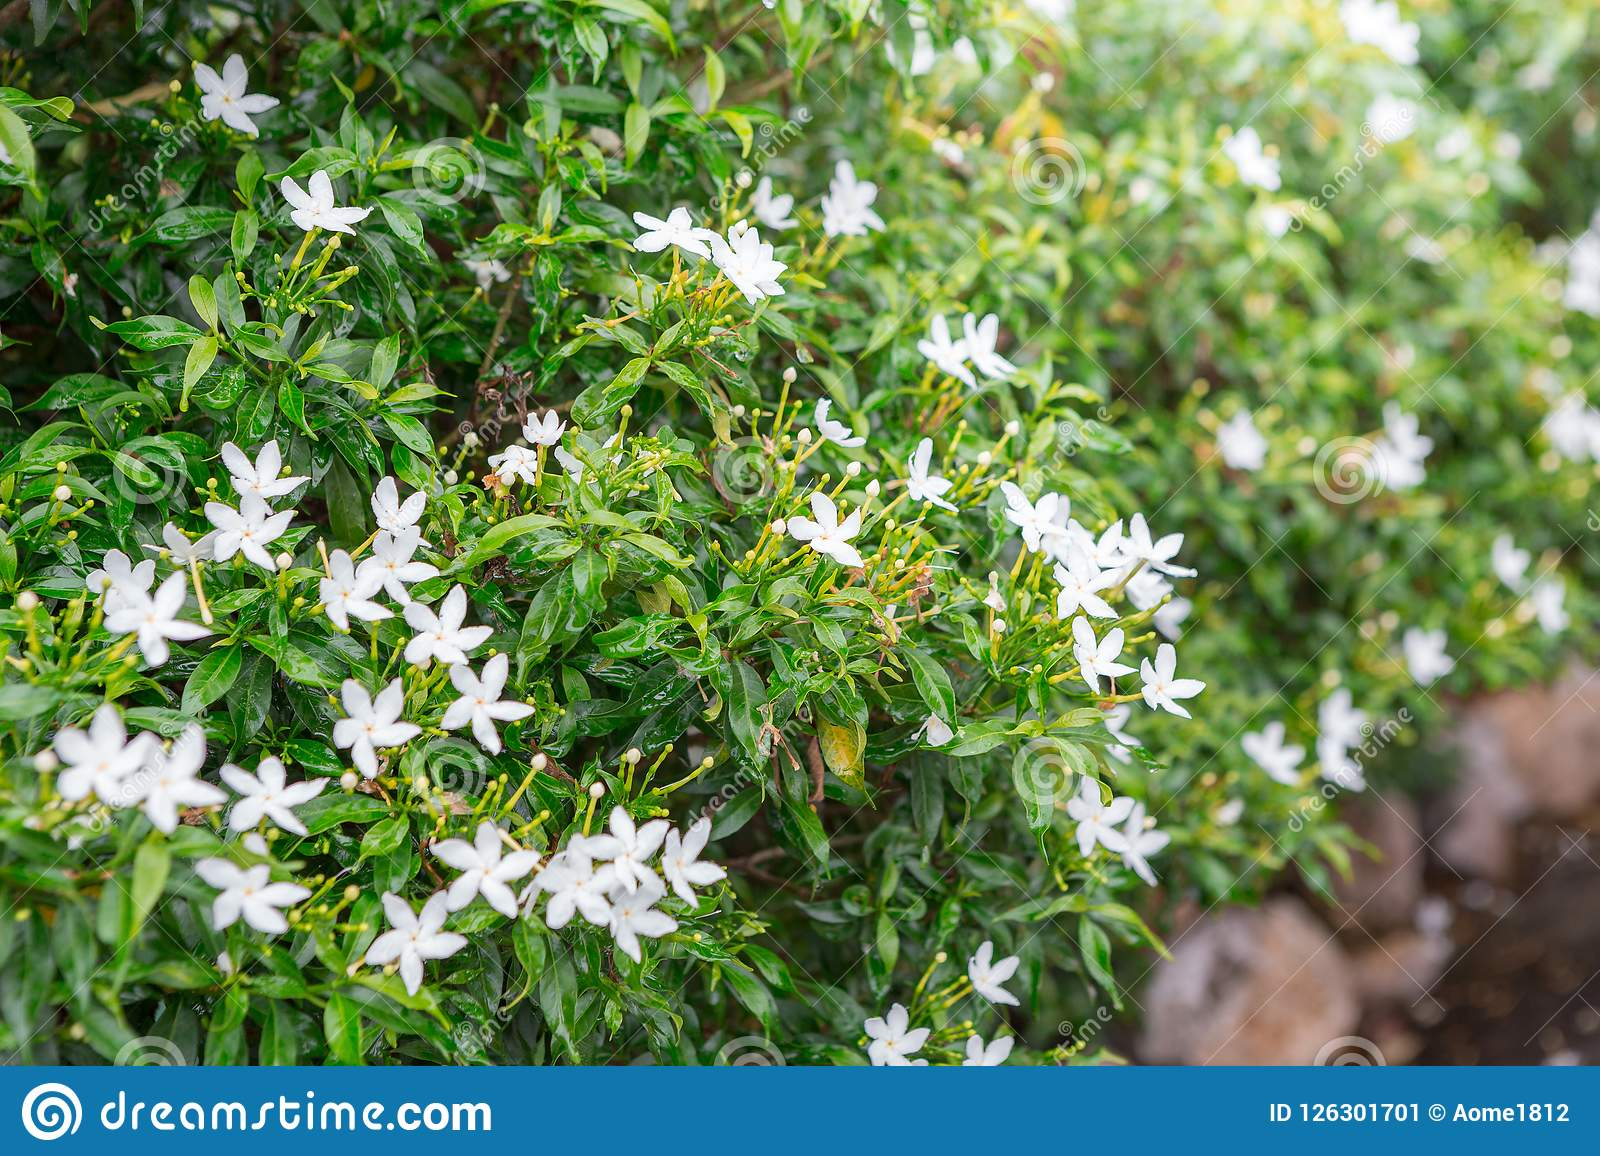 Green shrubs and small white flowers